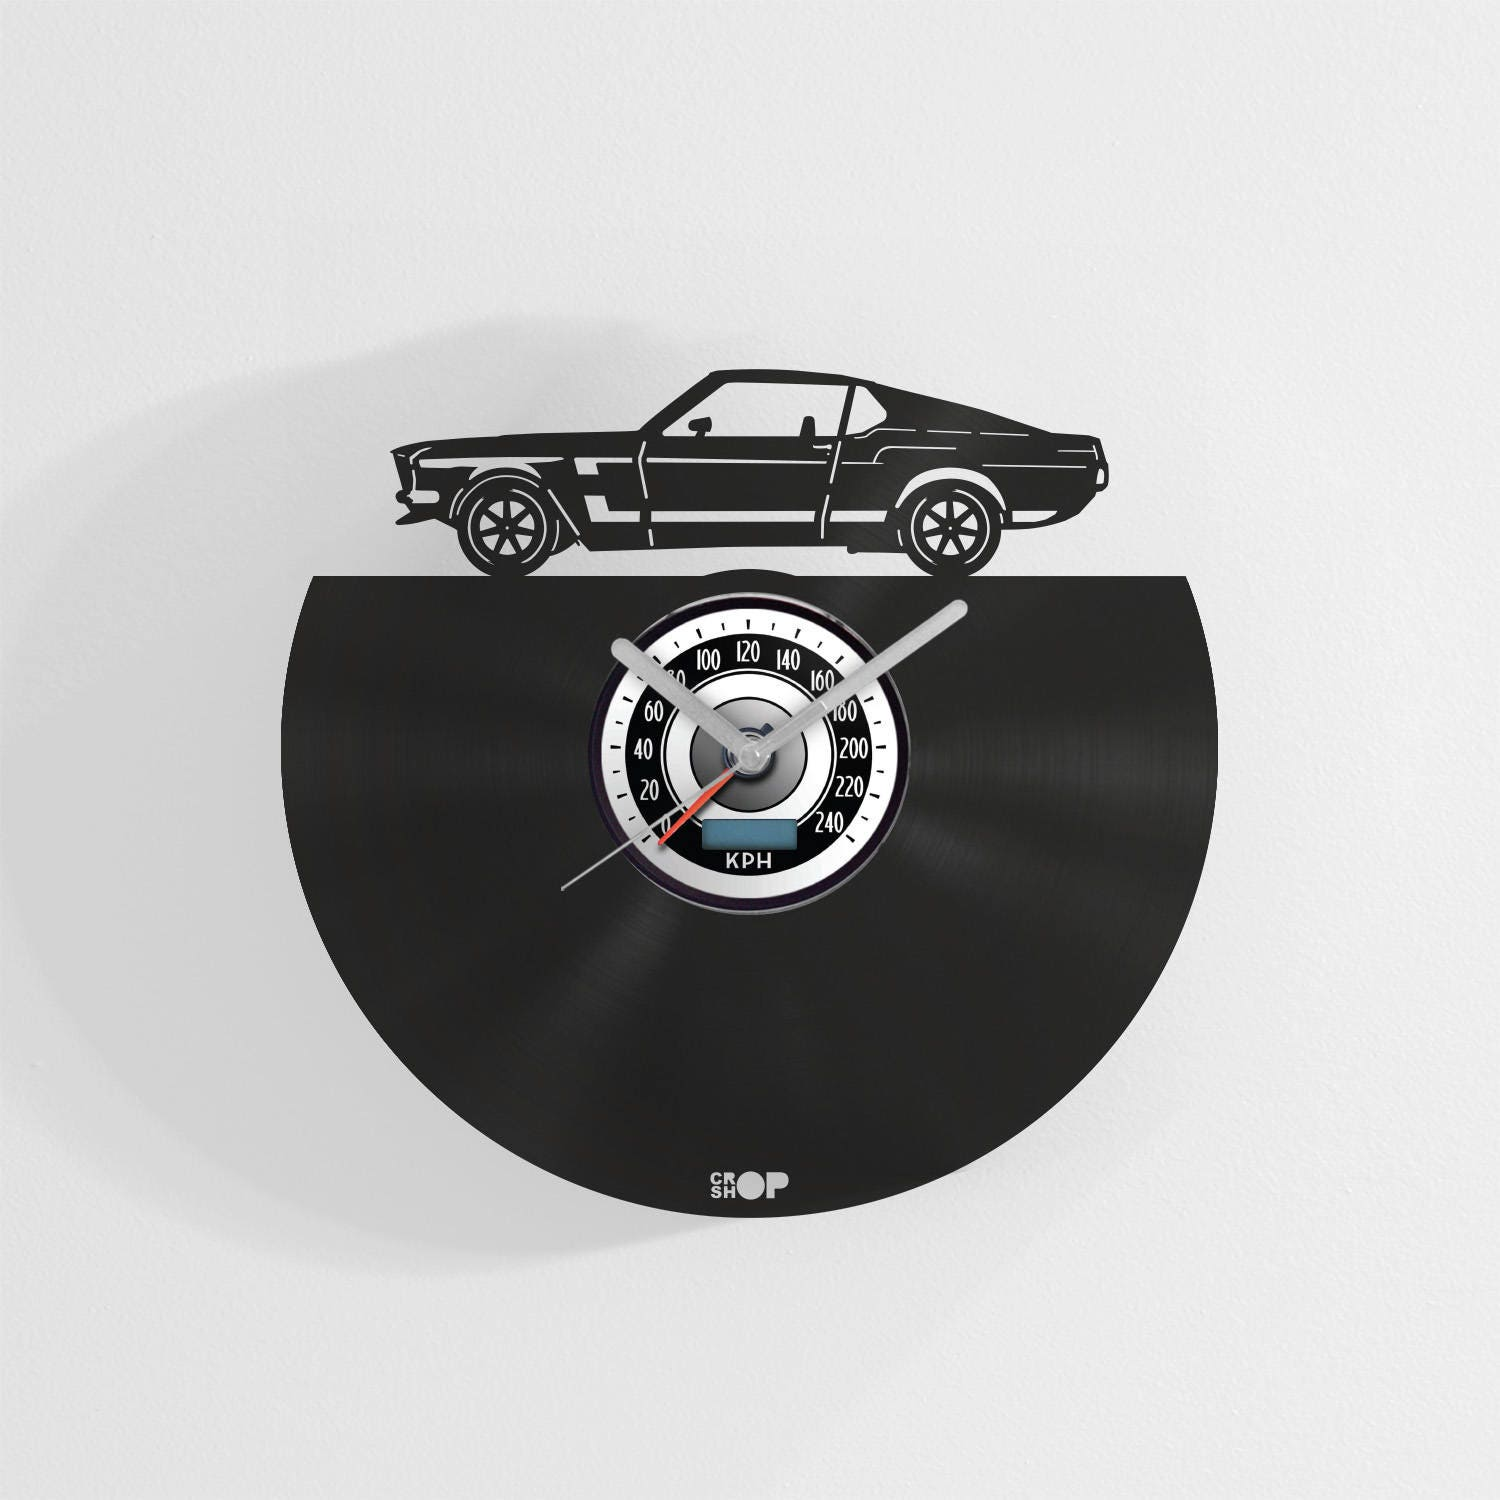 Ford Mustang Wall Clock From Upcycled Vinyl Record Lp Hand Made Gift